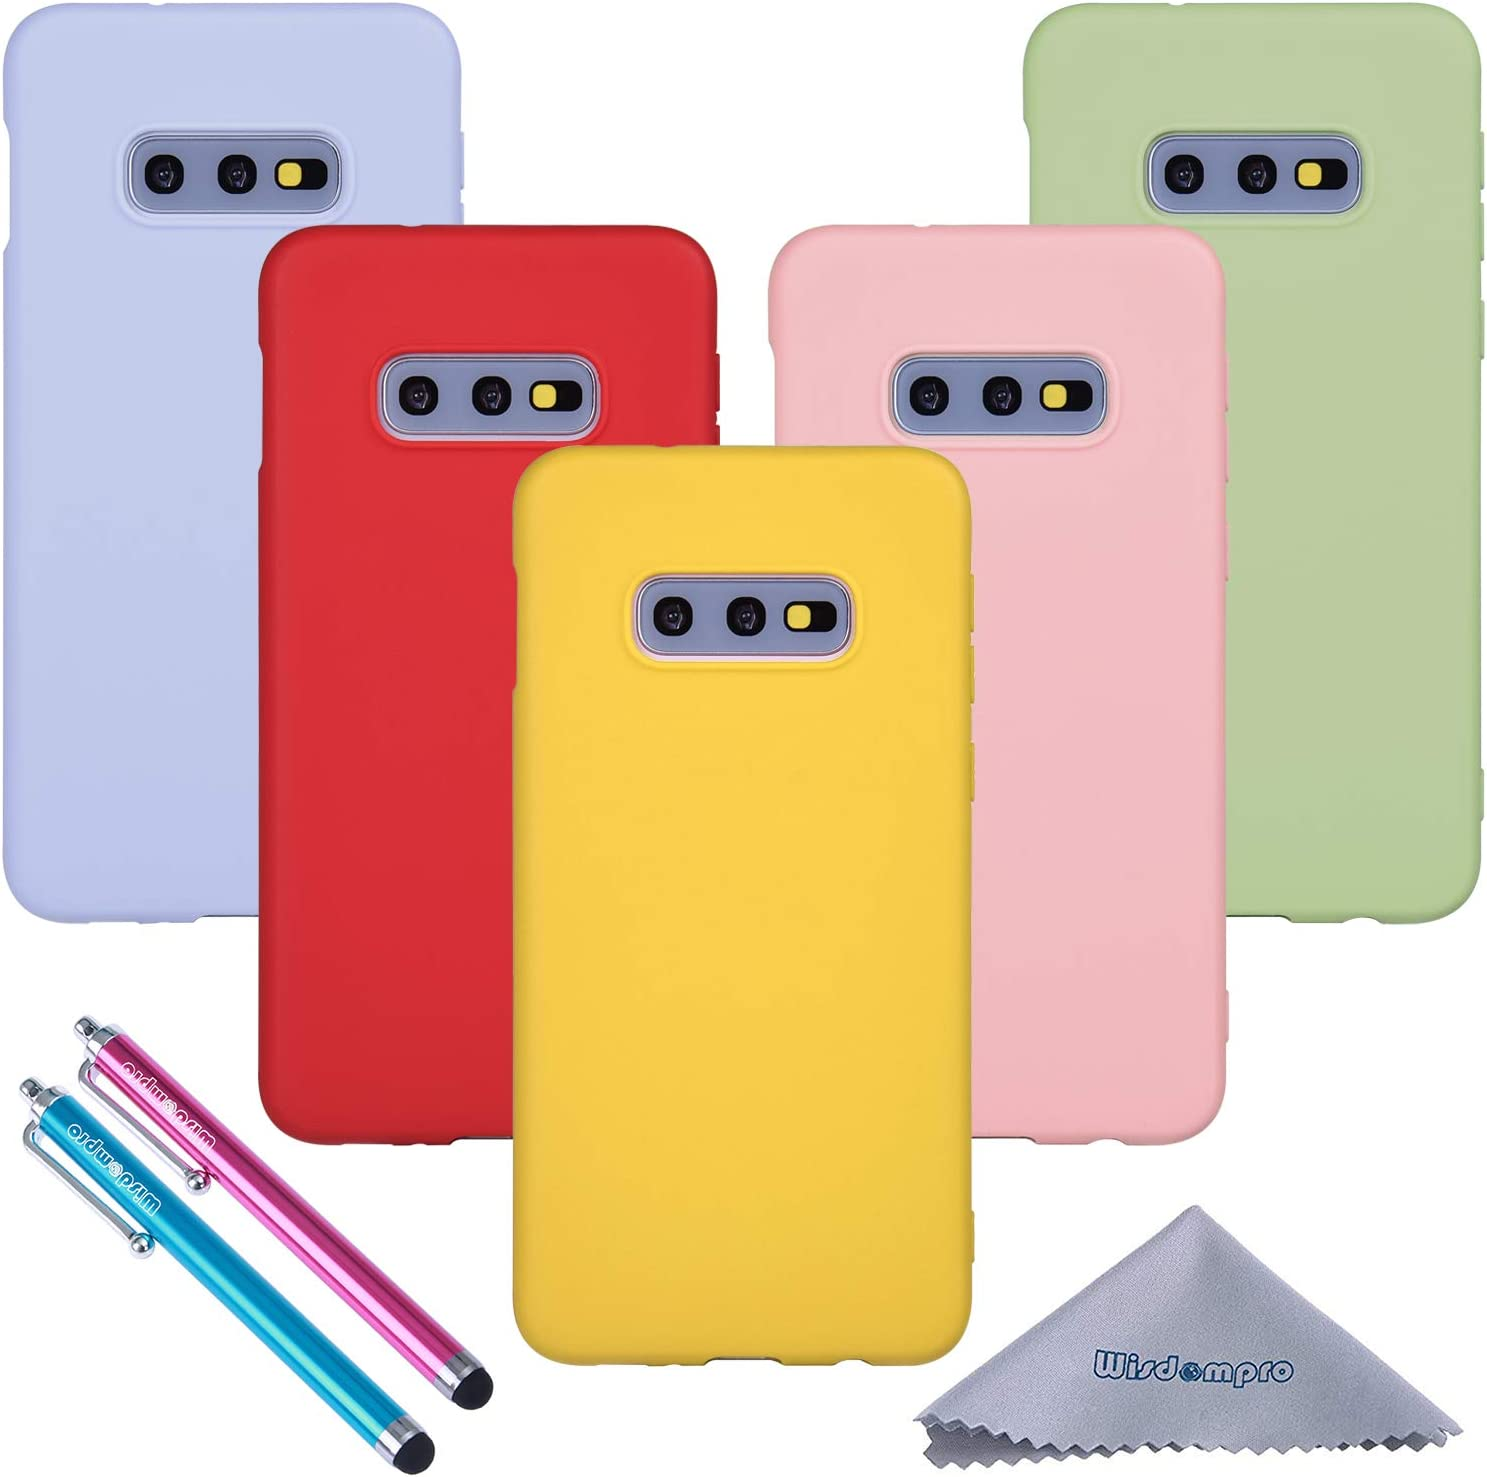 Galaxy S10e Case, Wisdompro Bundle of 5 Pack Extra Thin Slim Jelly Soft TPU Gel Protective Case Cover for Samsung Galaxy S10e (Green, Light Blue, Pink, Yellow, Red)-Candy Color